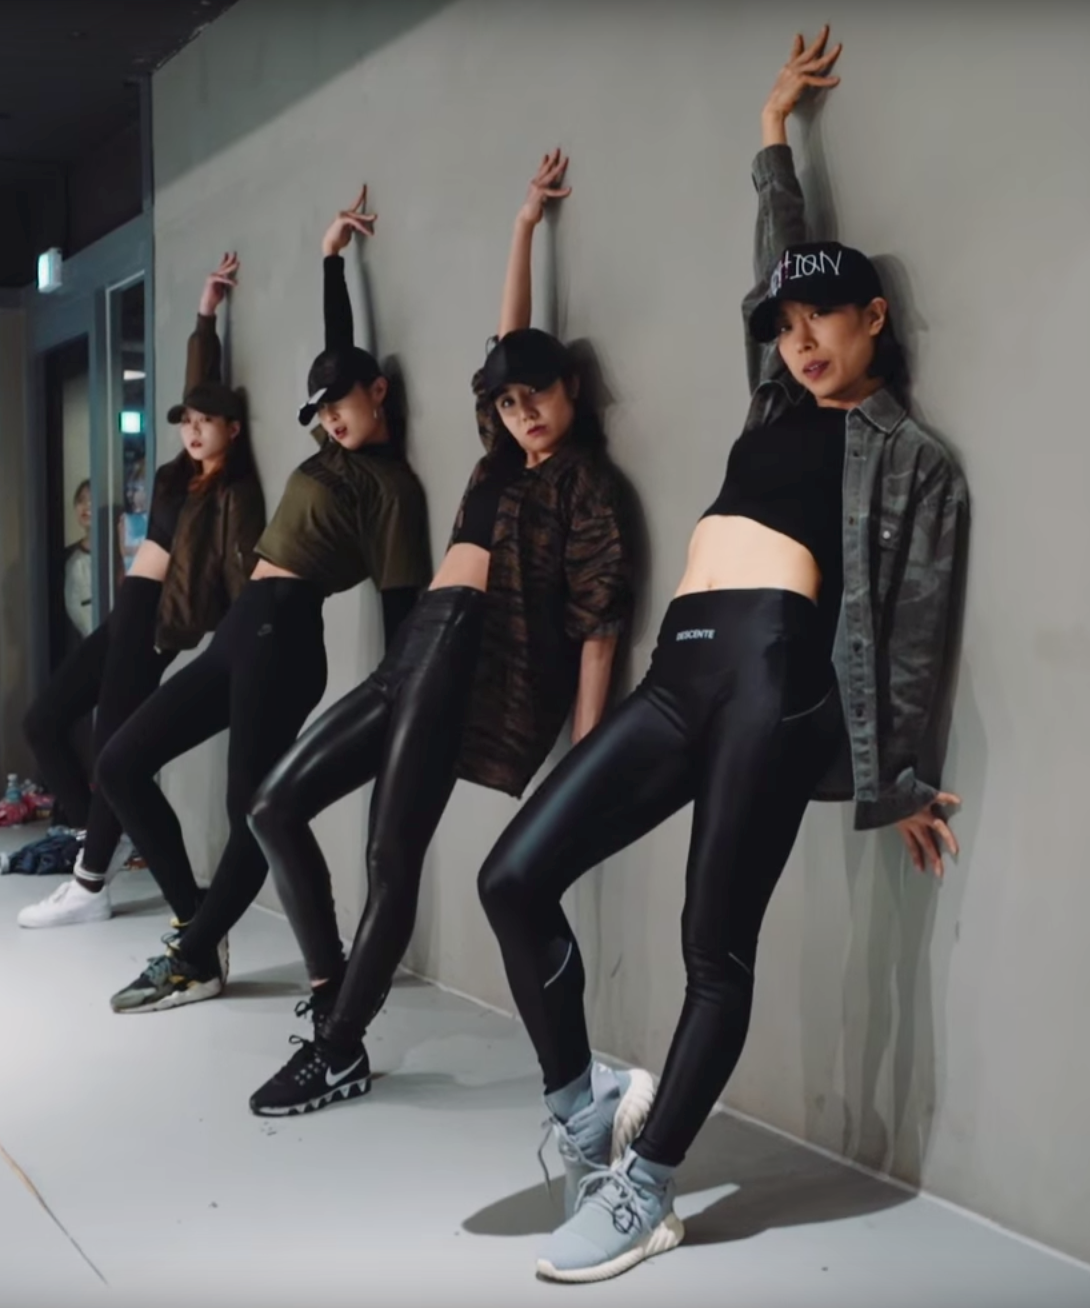 These K Pop Dance Groups Straight Up Slay Dance Outfits Dance Outfits Practice Dance Class Outfit